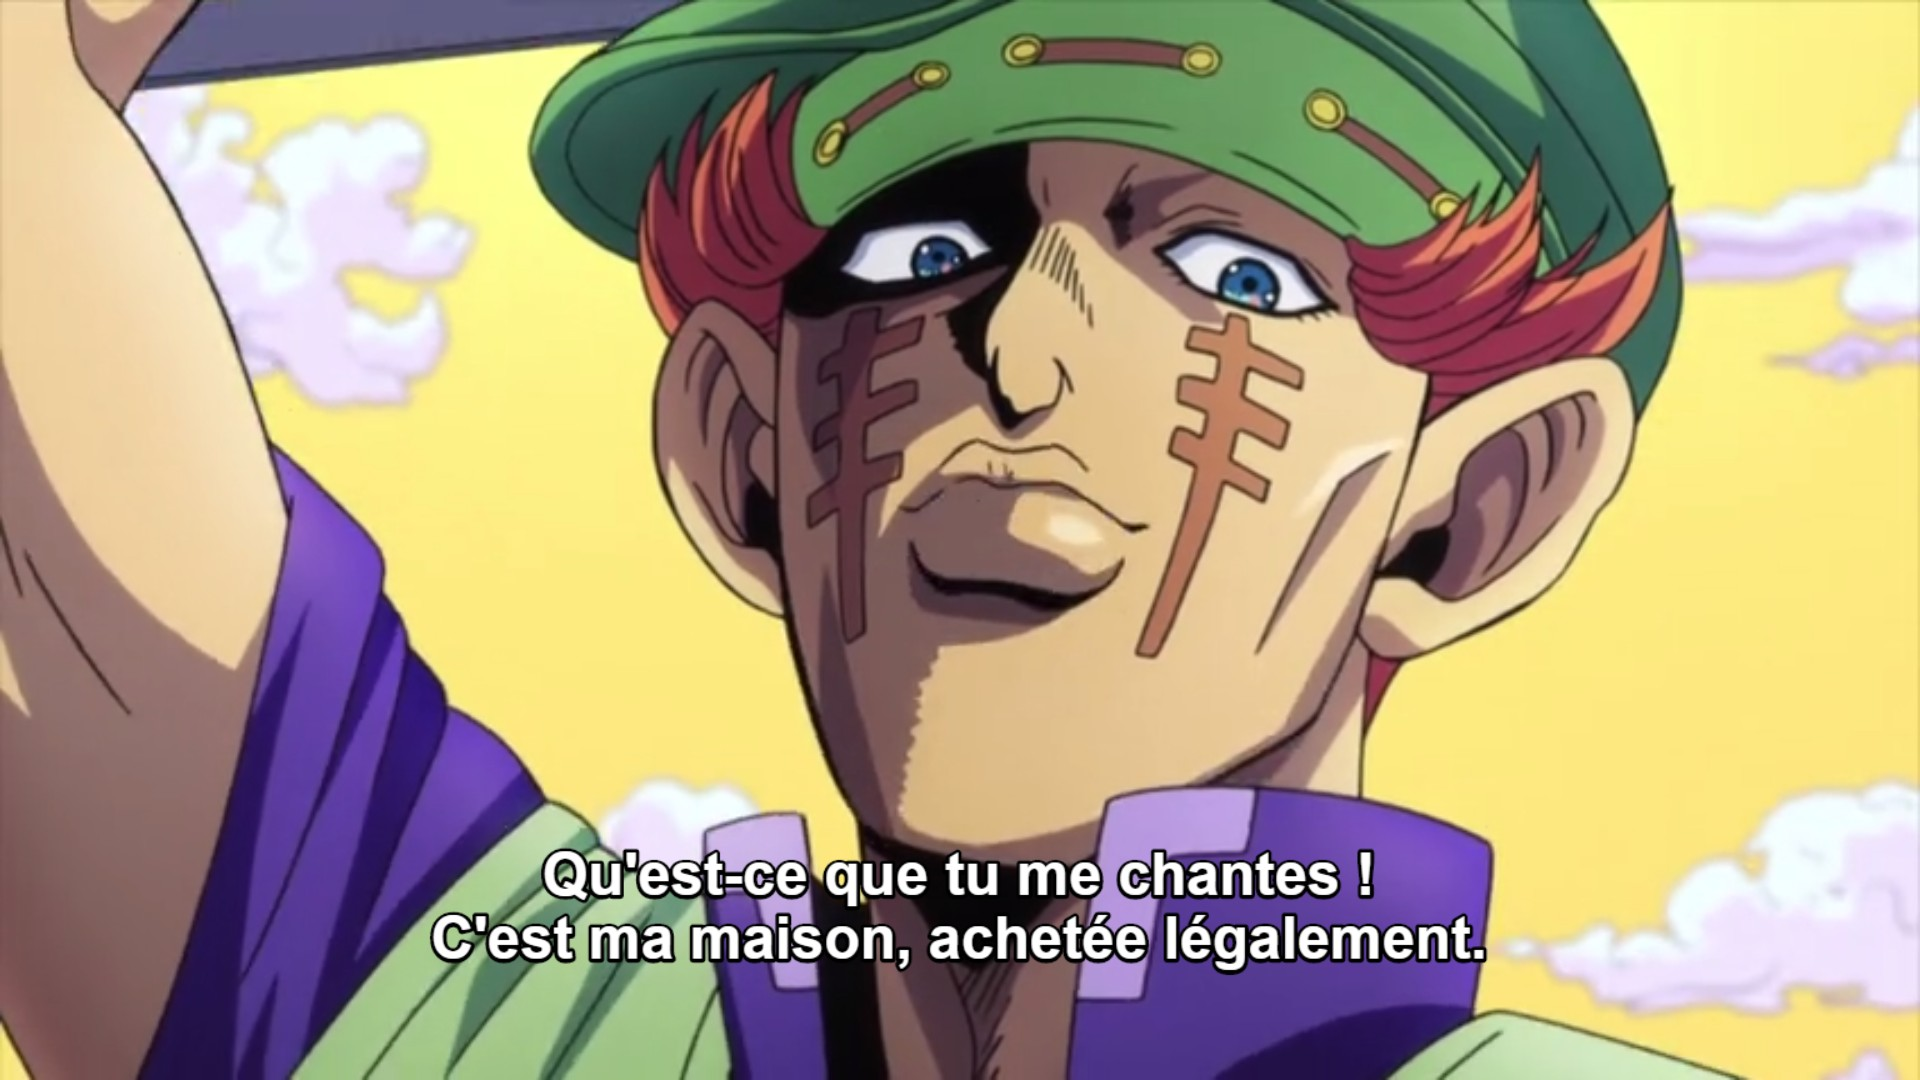 Jojo's Bizarre Adventure Saison 3 Diamond is Unbreakable - Épisode 31 - streaming - VOSTFR - ADN - Google Chrome_26